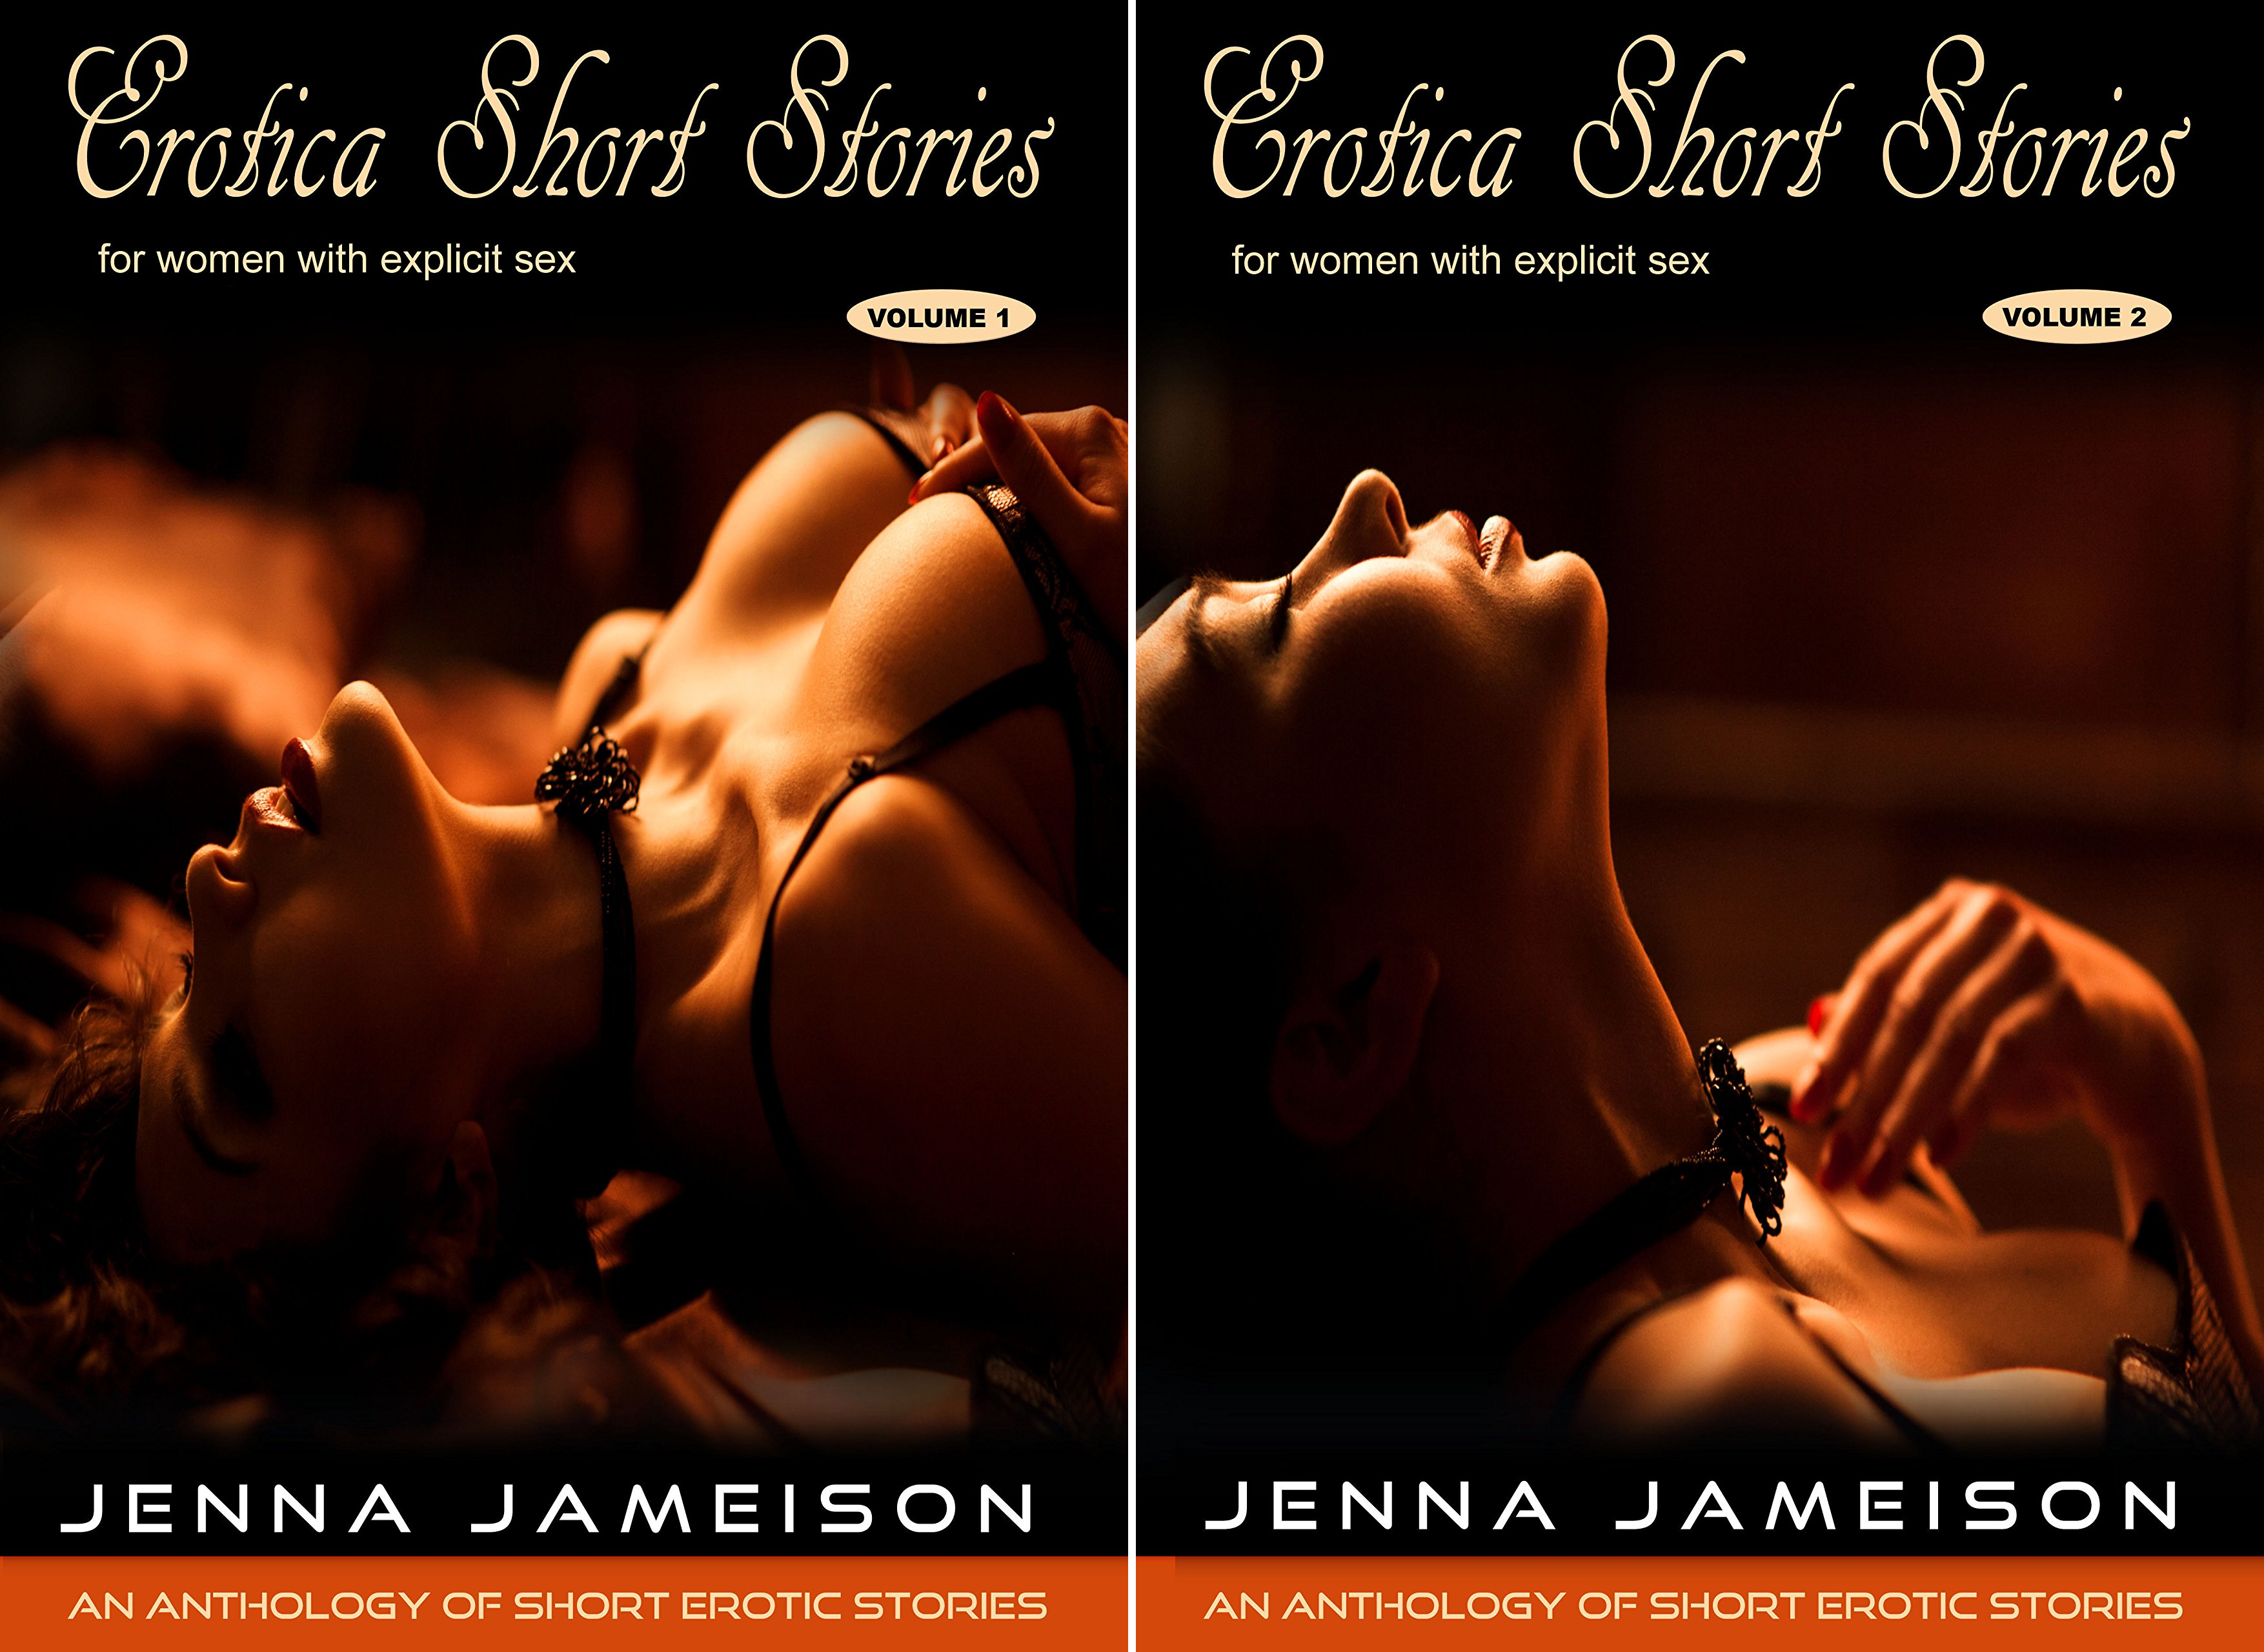 Books : Erotica Short Stories for Women with Explicit Sex (2 Book Series)